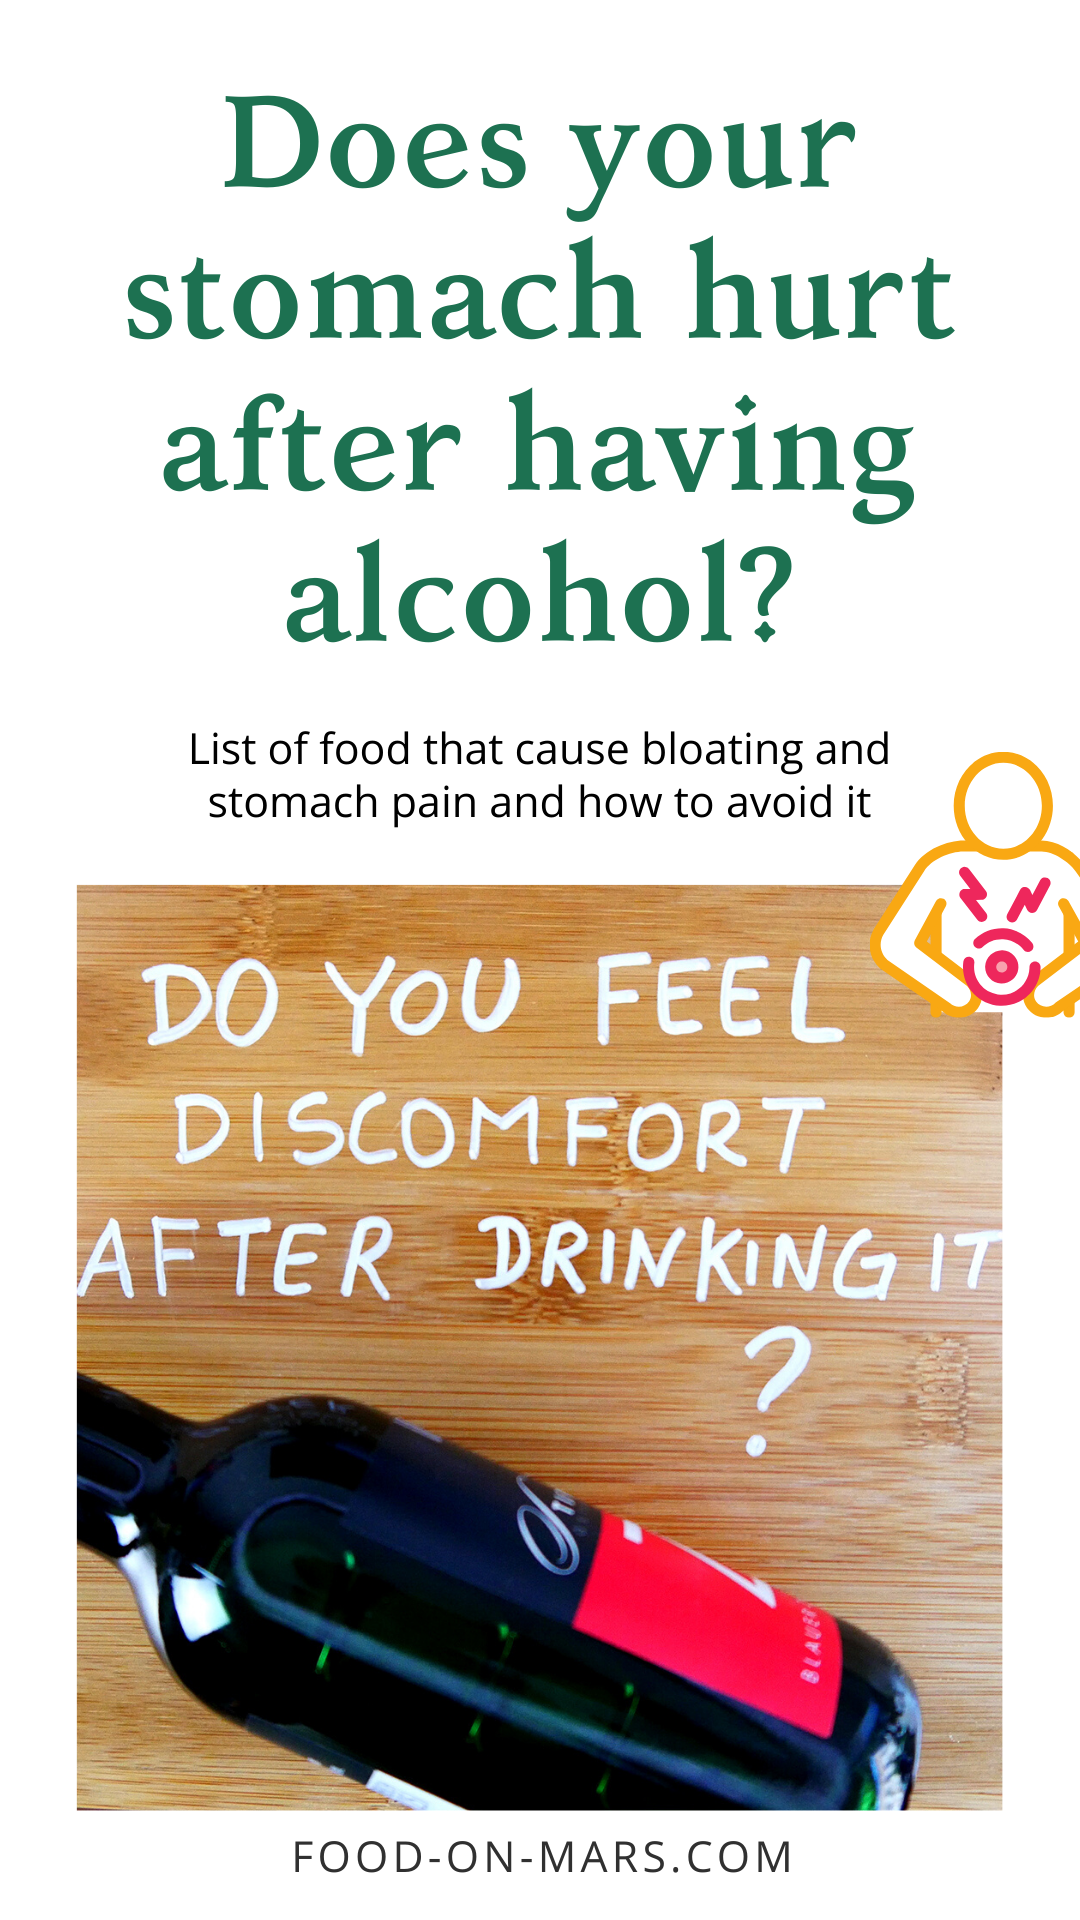 dbc3e03ec96a617931cad1c098f44f82 - How To Get Rid Of A Stomach Ache After Drinking